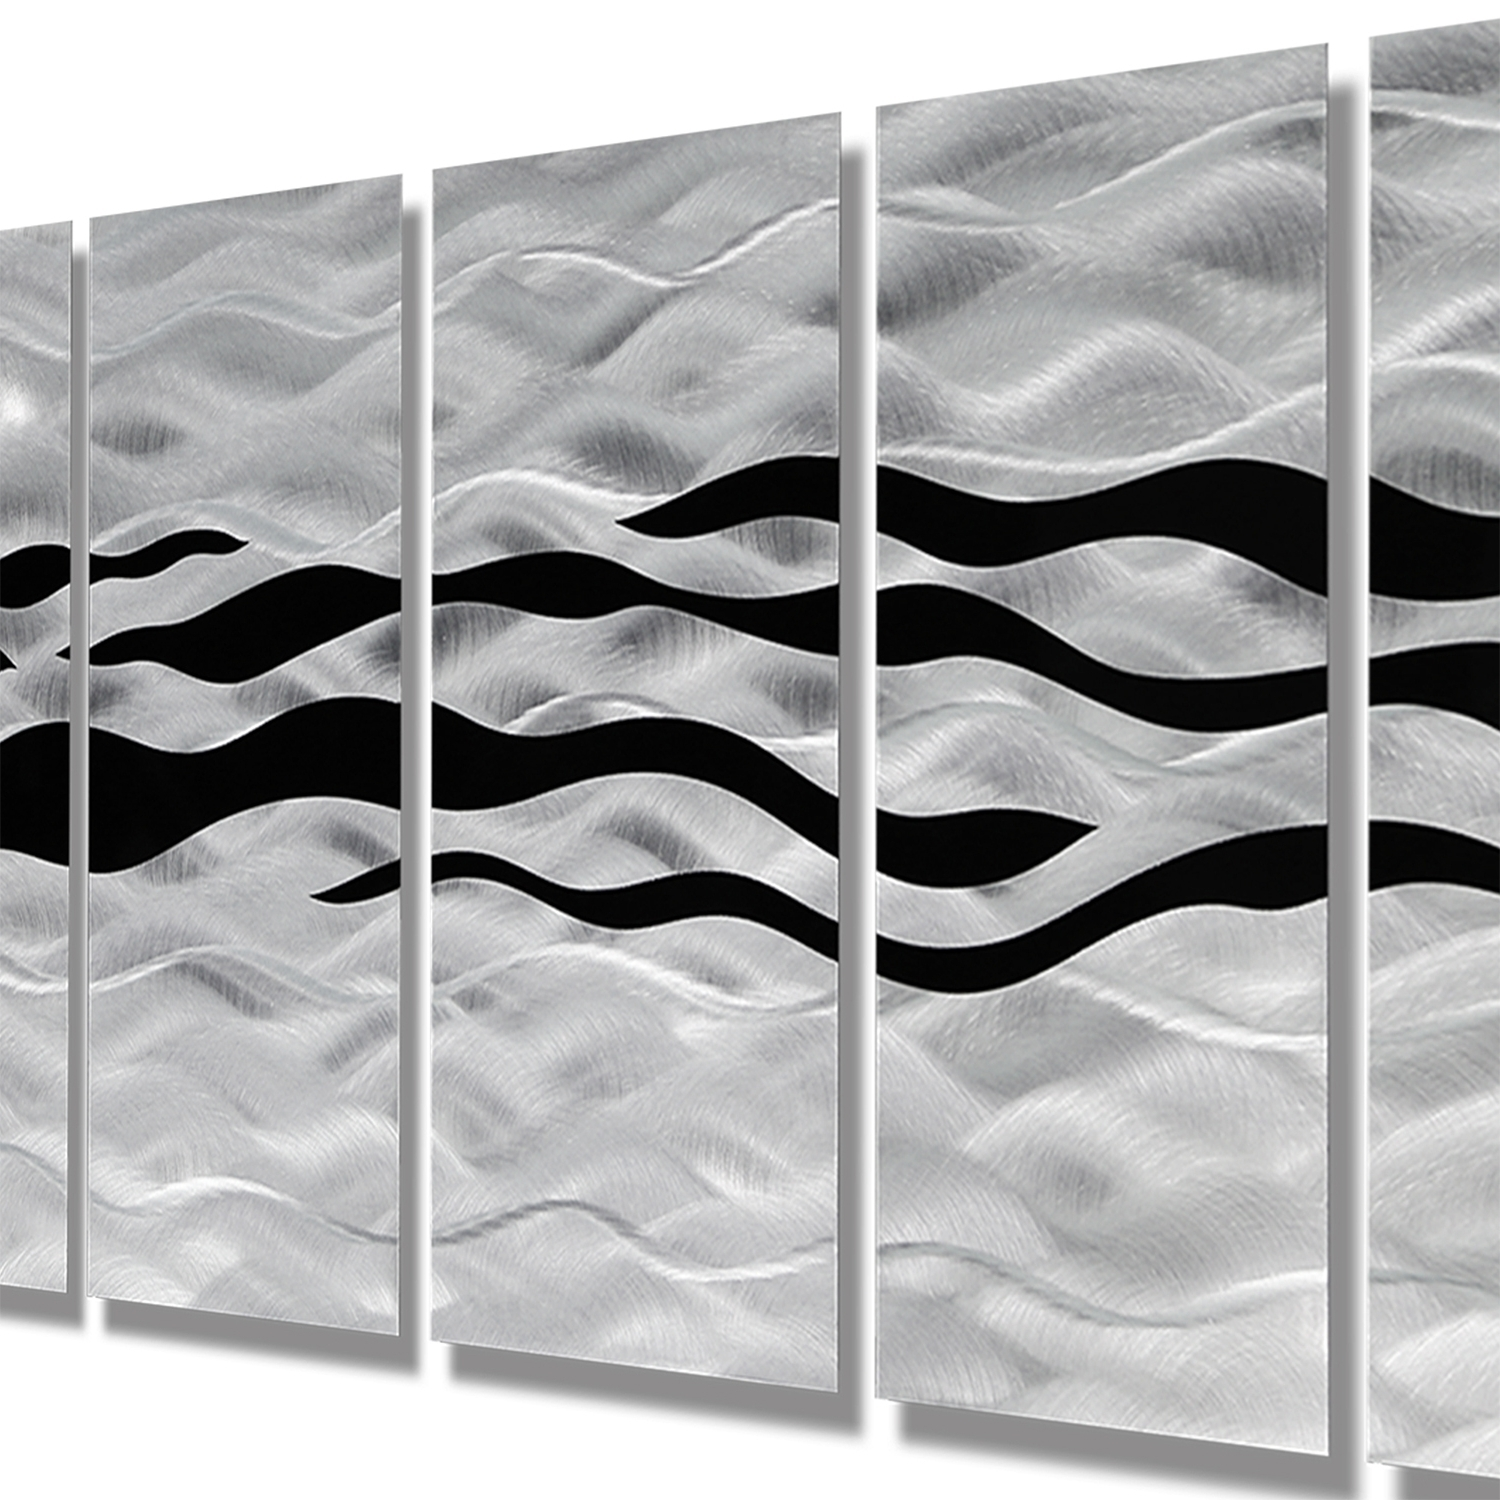 2017 Wild Ways – Silver And Black Modern Metallic Wall Hanging With Regard To Black Silver Wall Art (View 1 of 15)